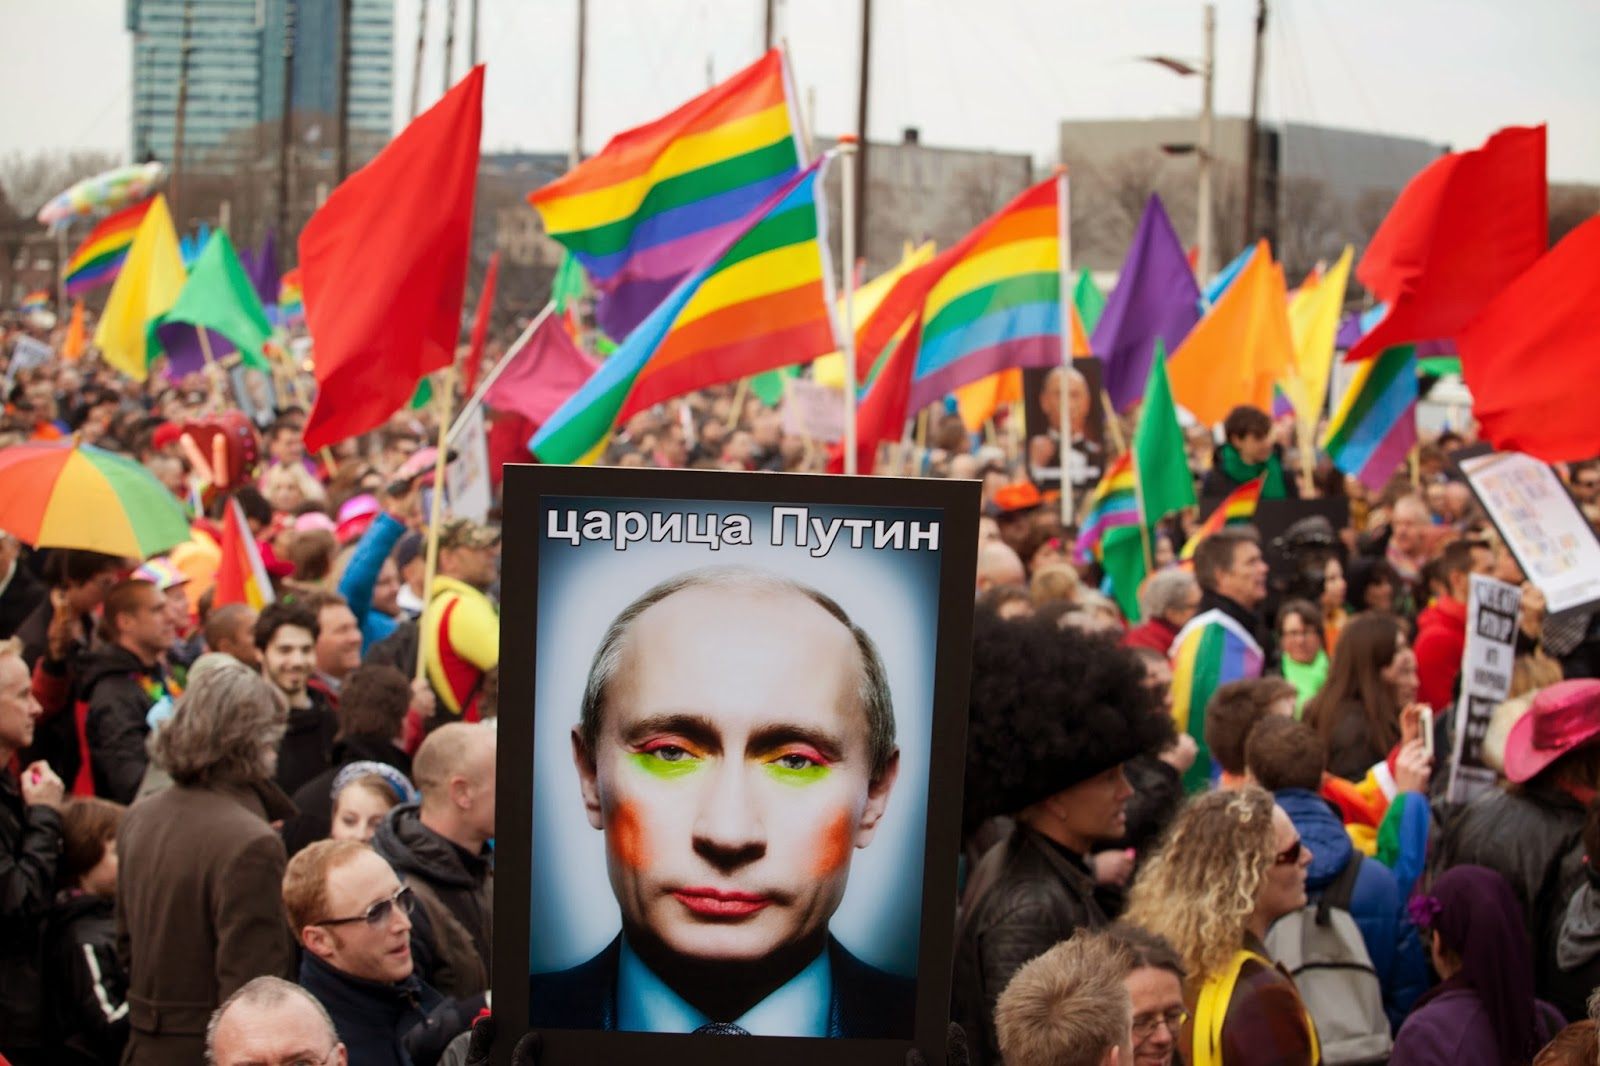 Russia gay activists protest